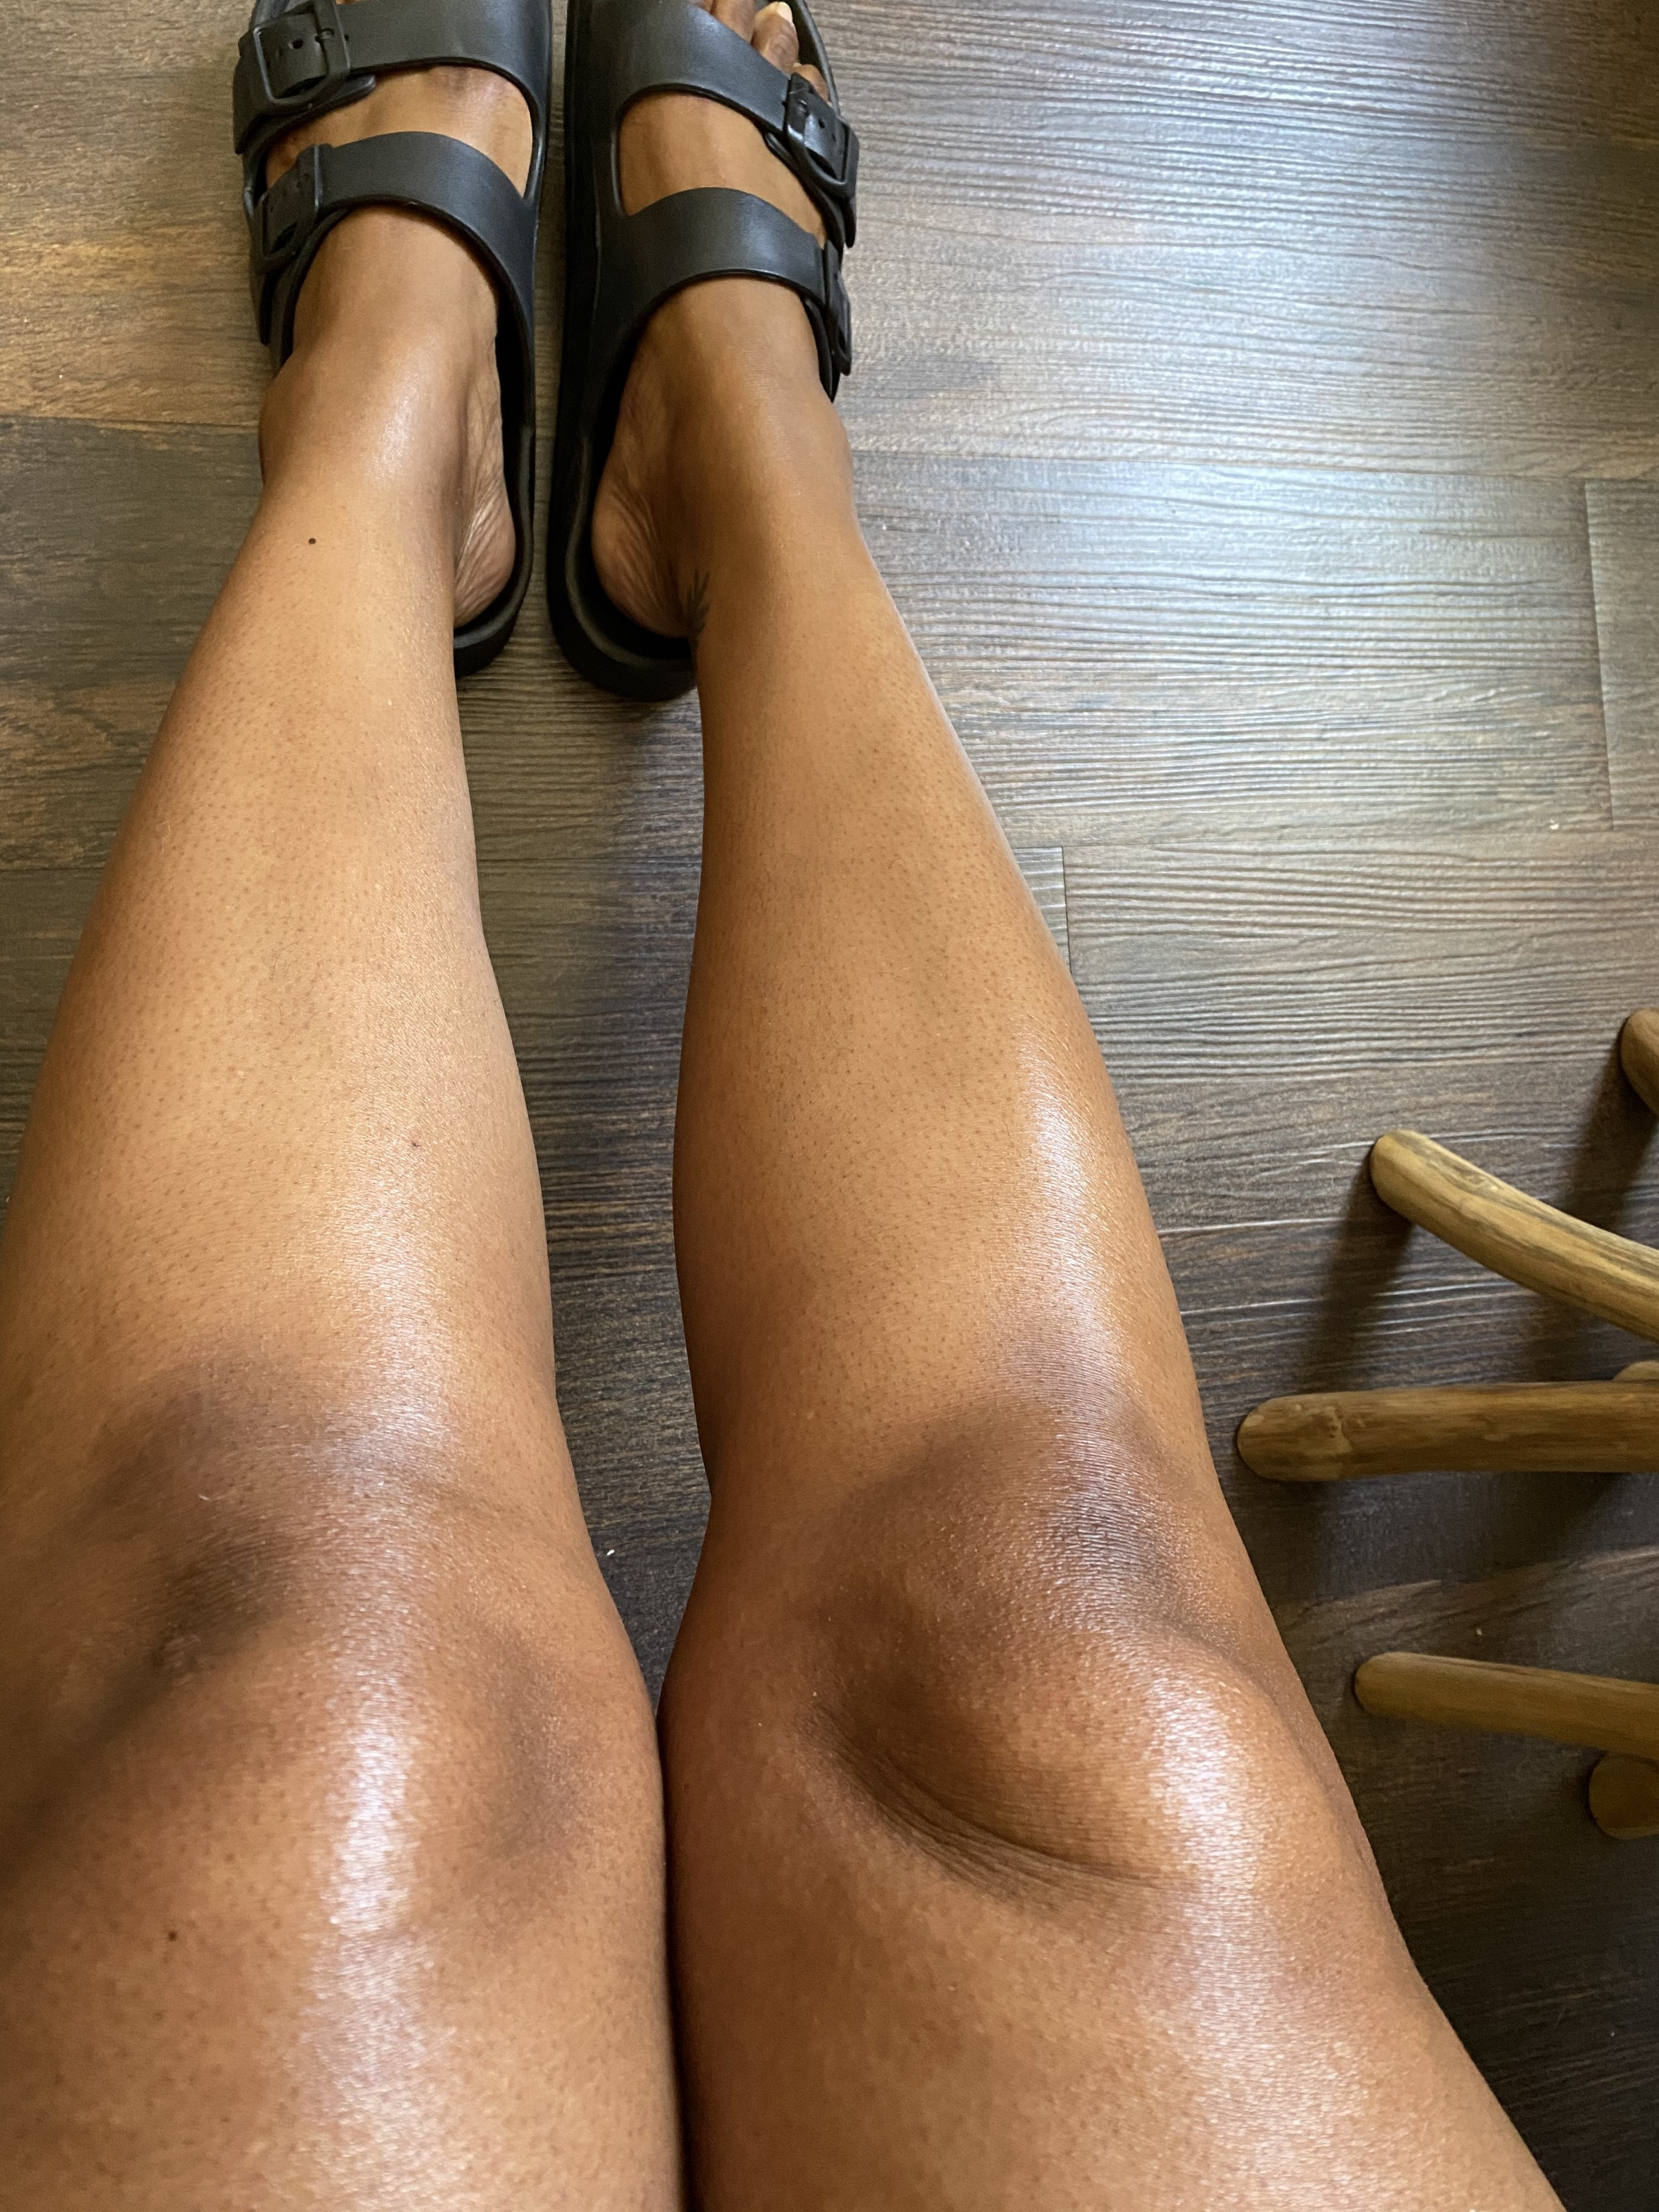 The author showing off her moisturized legs